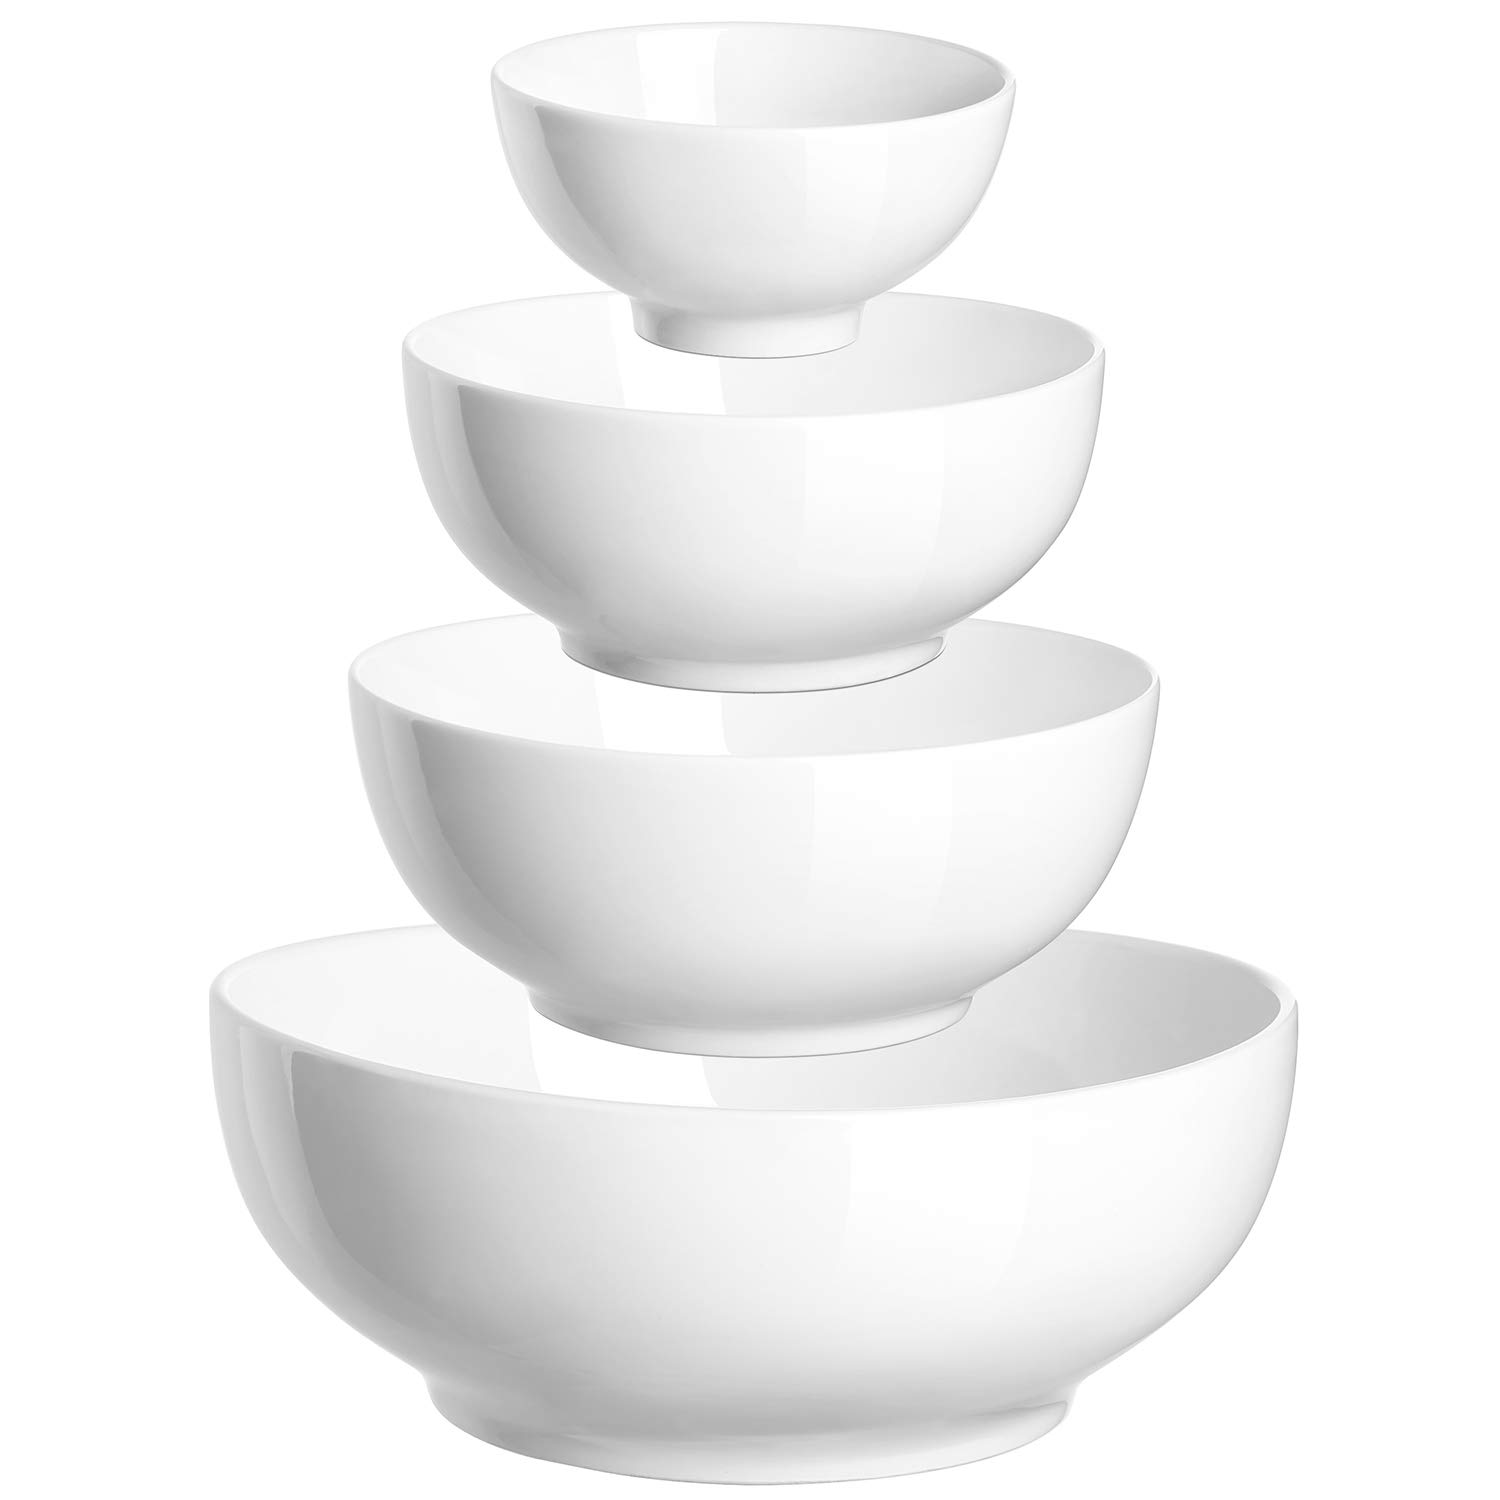 "DOWAN 4-Piece Porcelain Serving/Mixing Bowl Set (Diameter:4.5""-6""-7""-9""), Anti-Slipping Nesting Bowls"